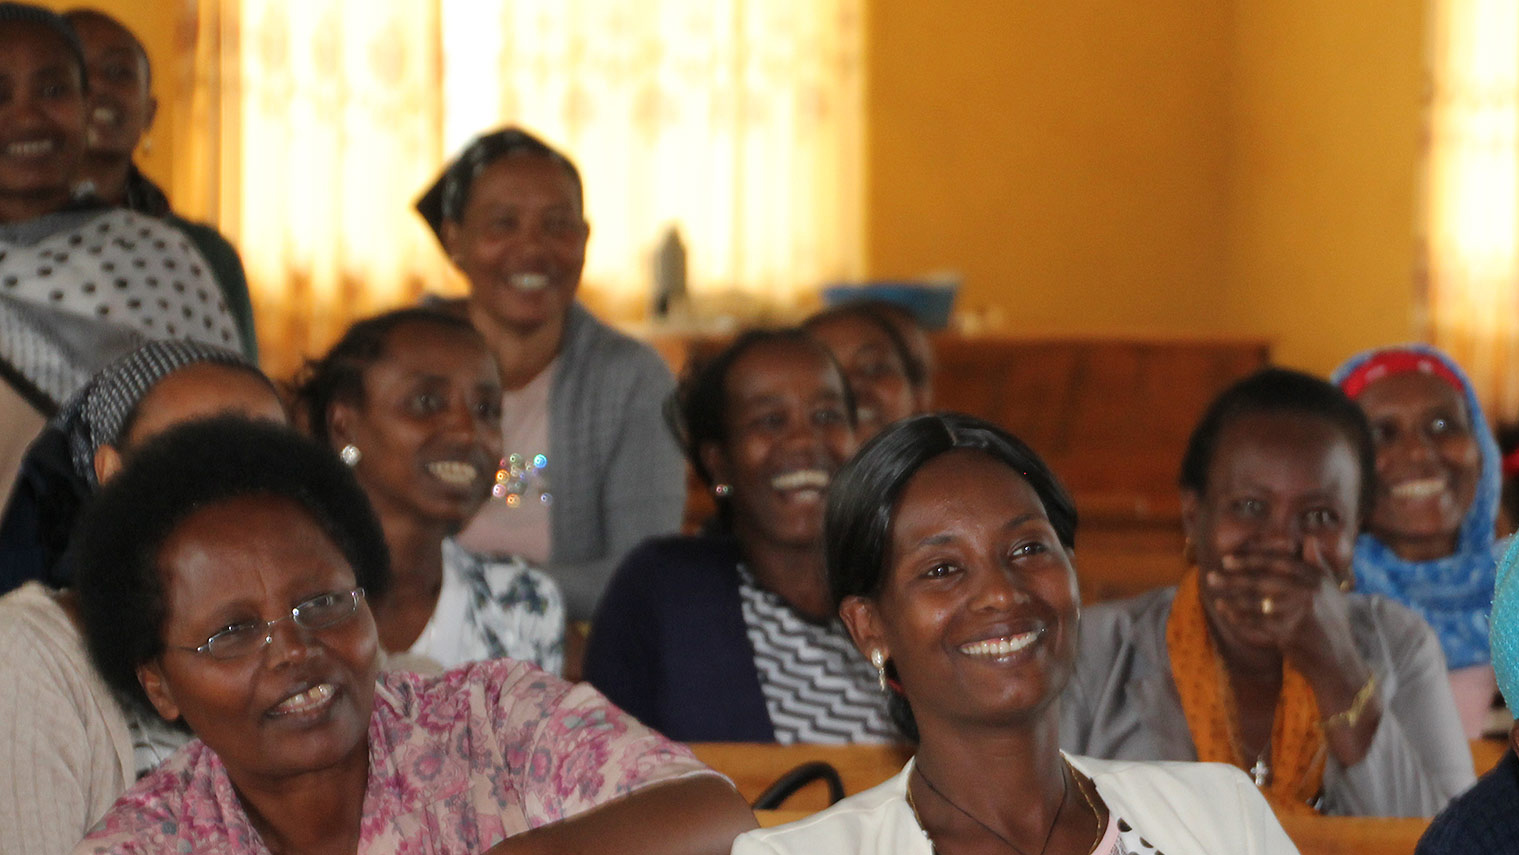 Gods Perfect Timing on display as Ethiopian Women are equipped to be disciple-makers for Jesus.